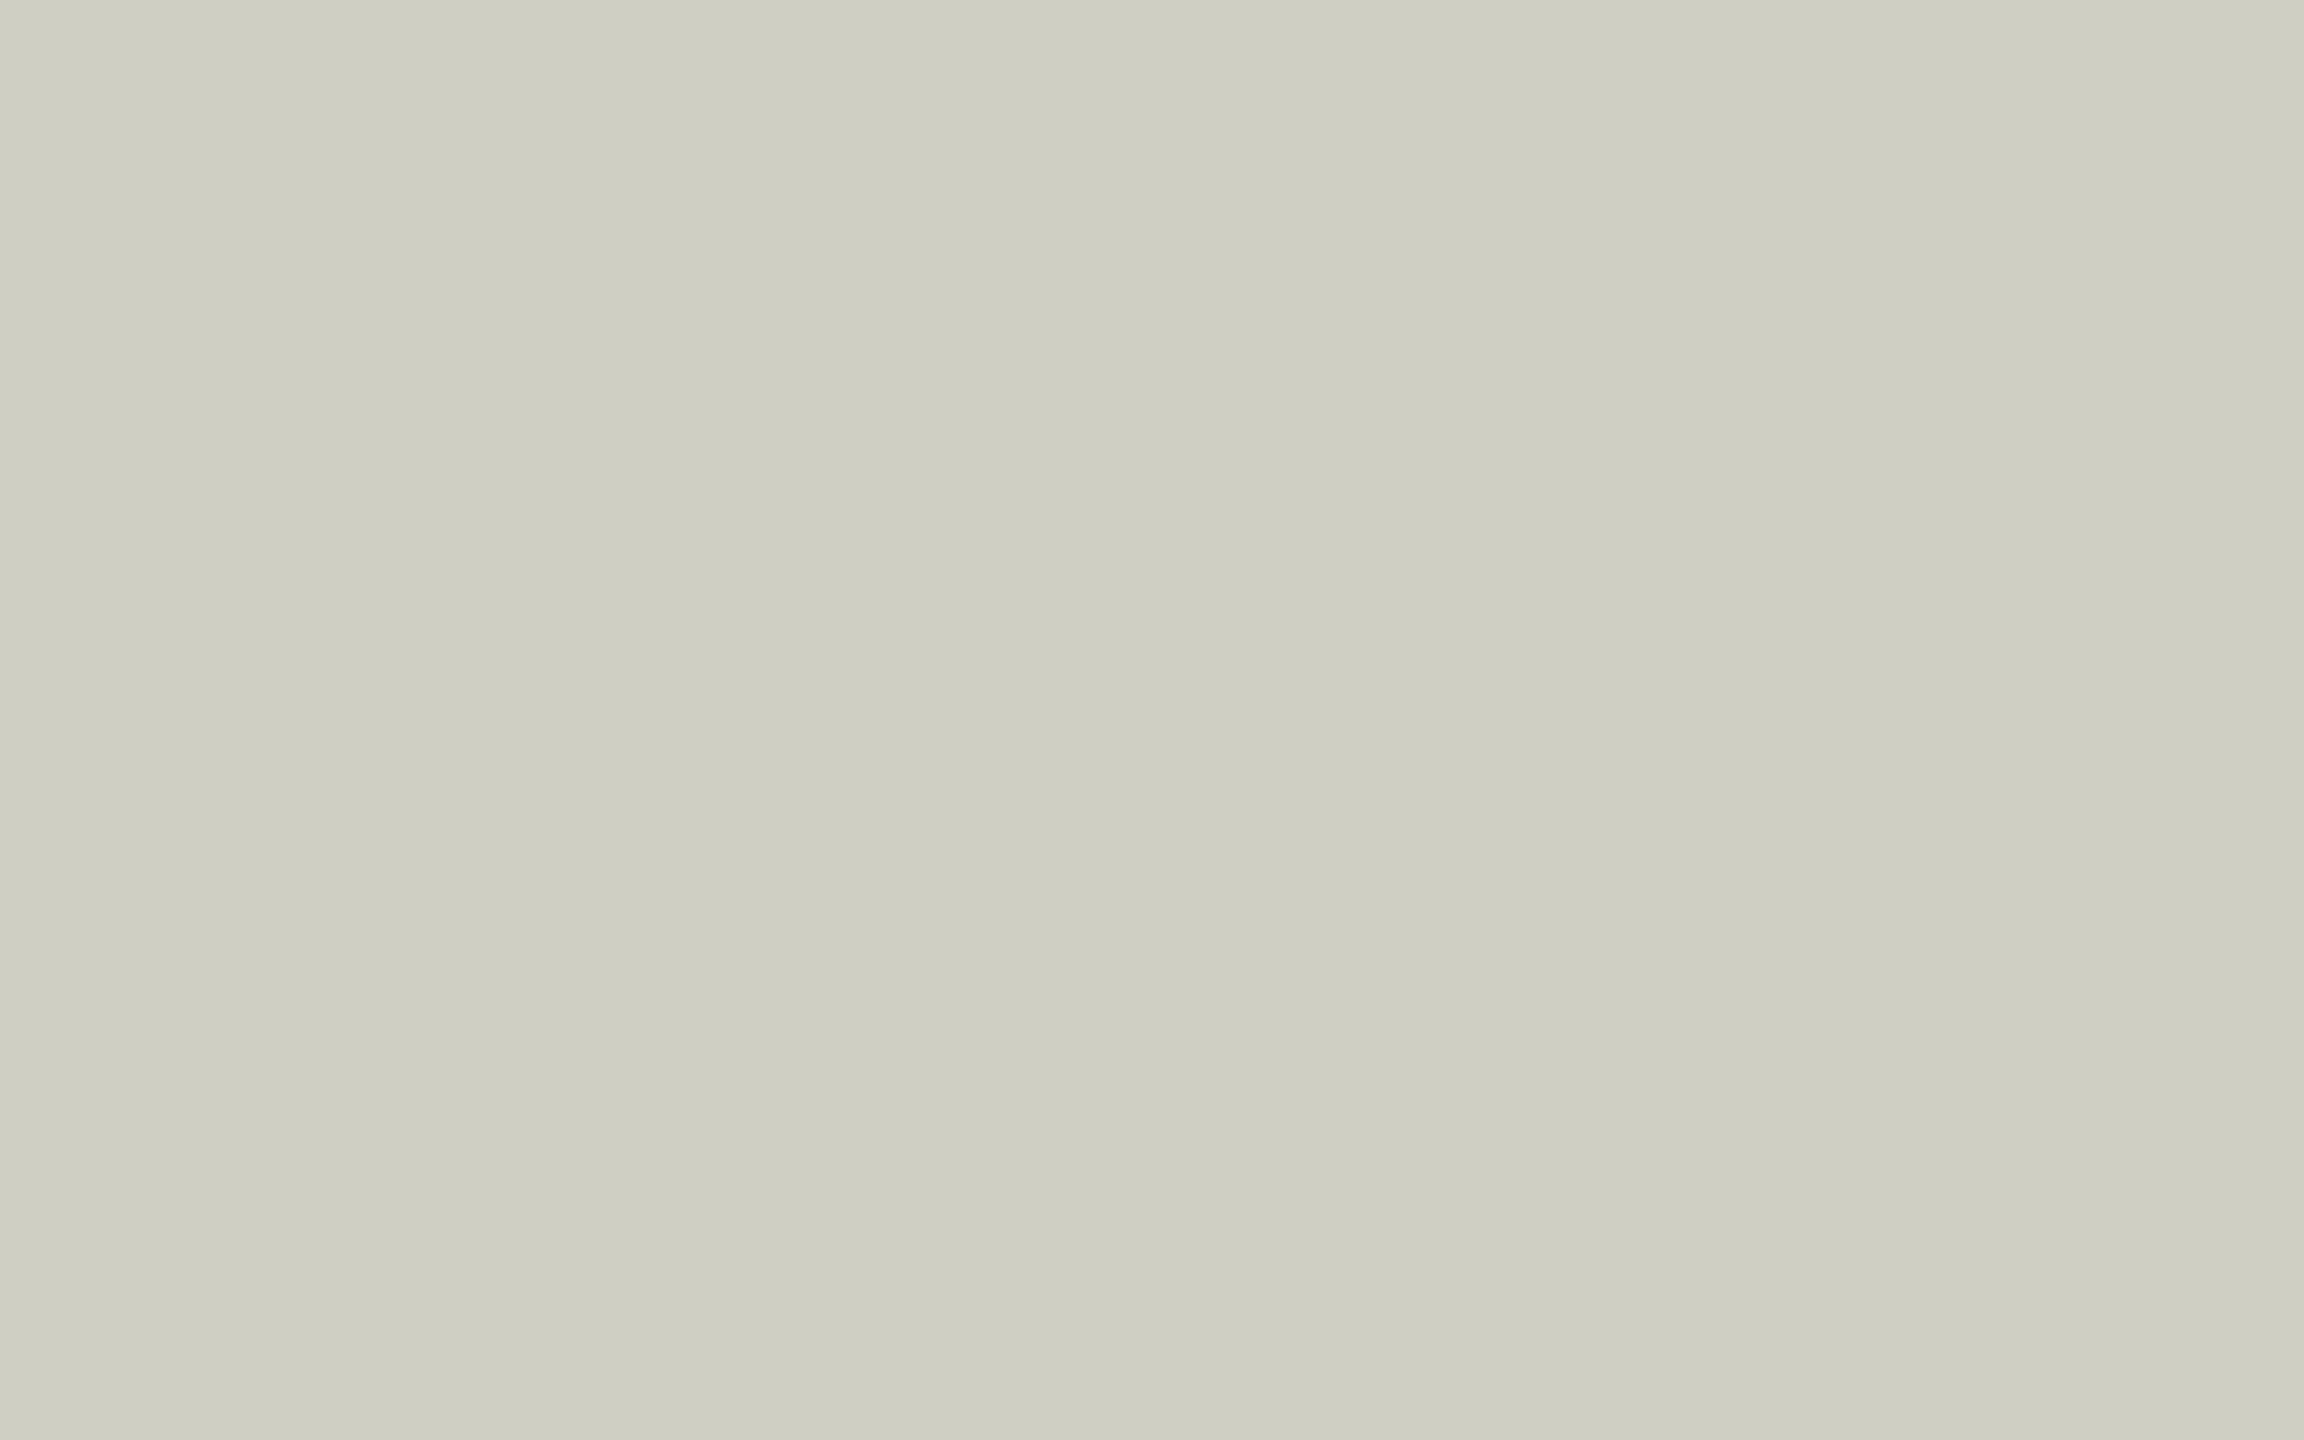 2304x1440 Pastel Gray Solid Color Background